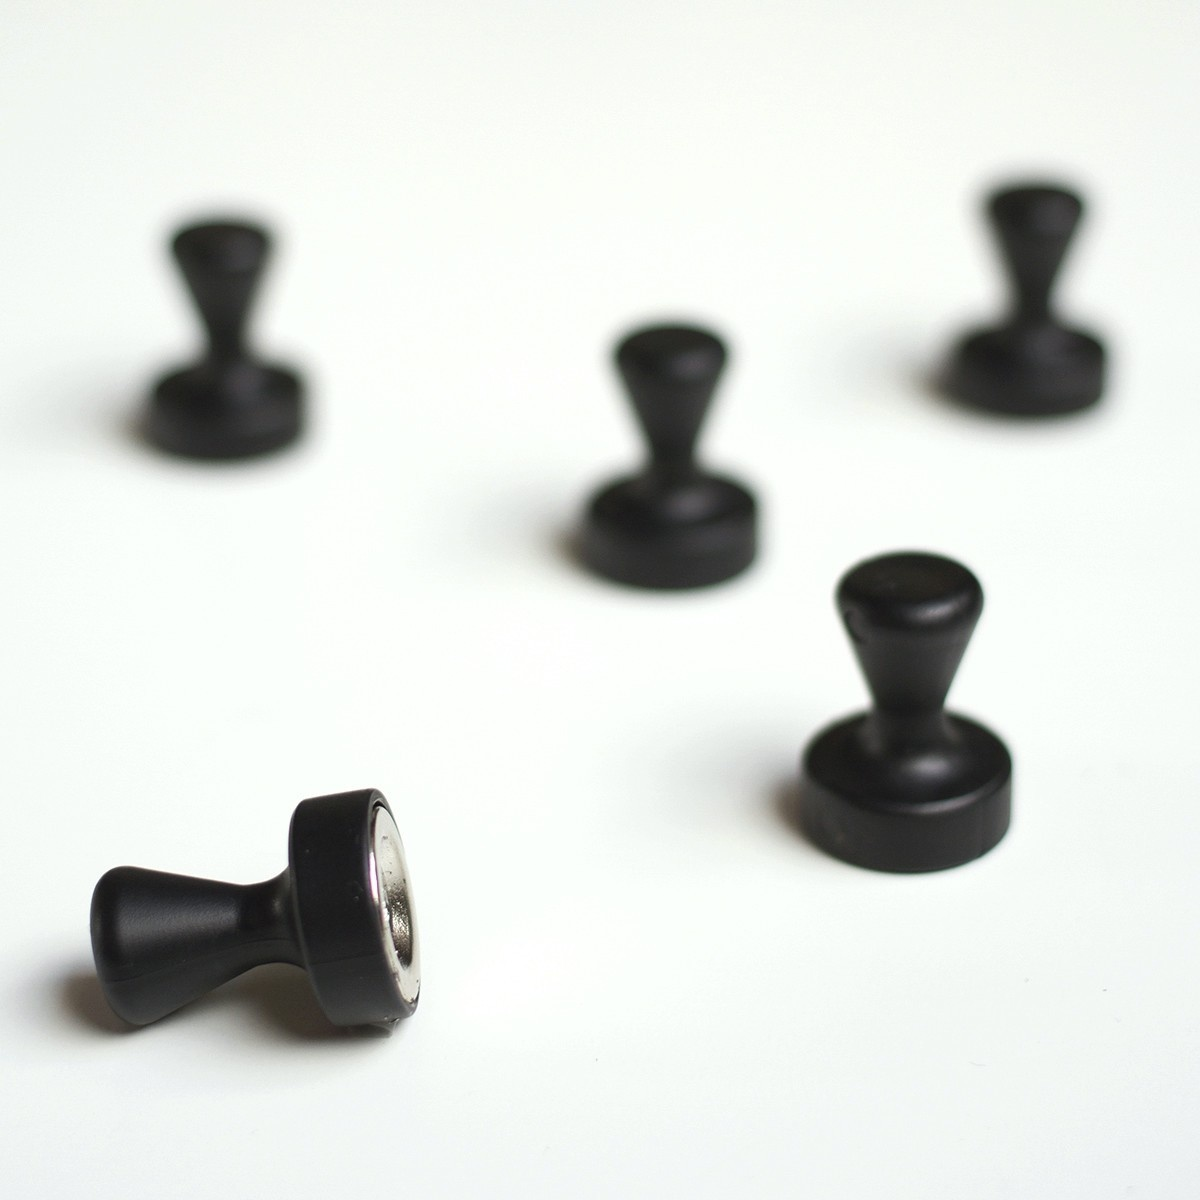 Groovy Magnets magnets, pawn, black